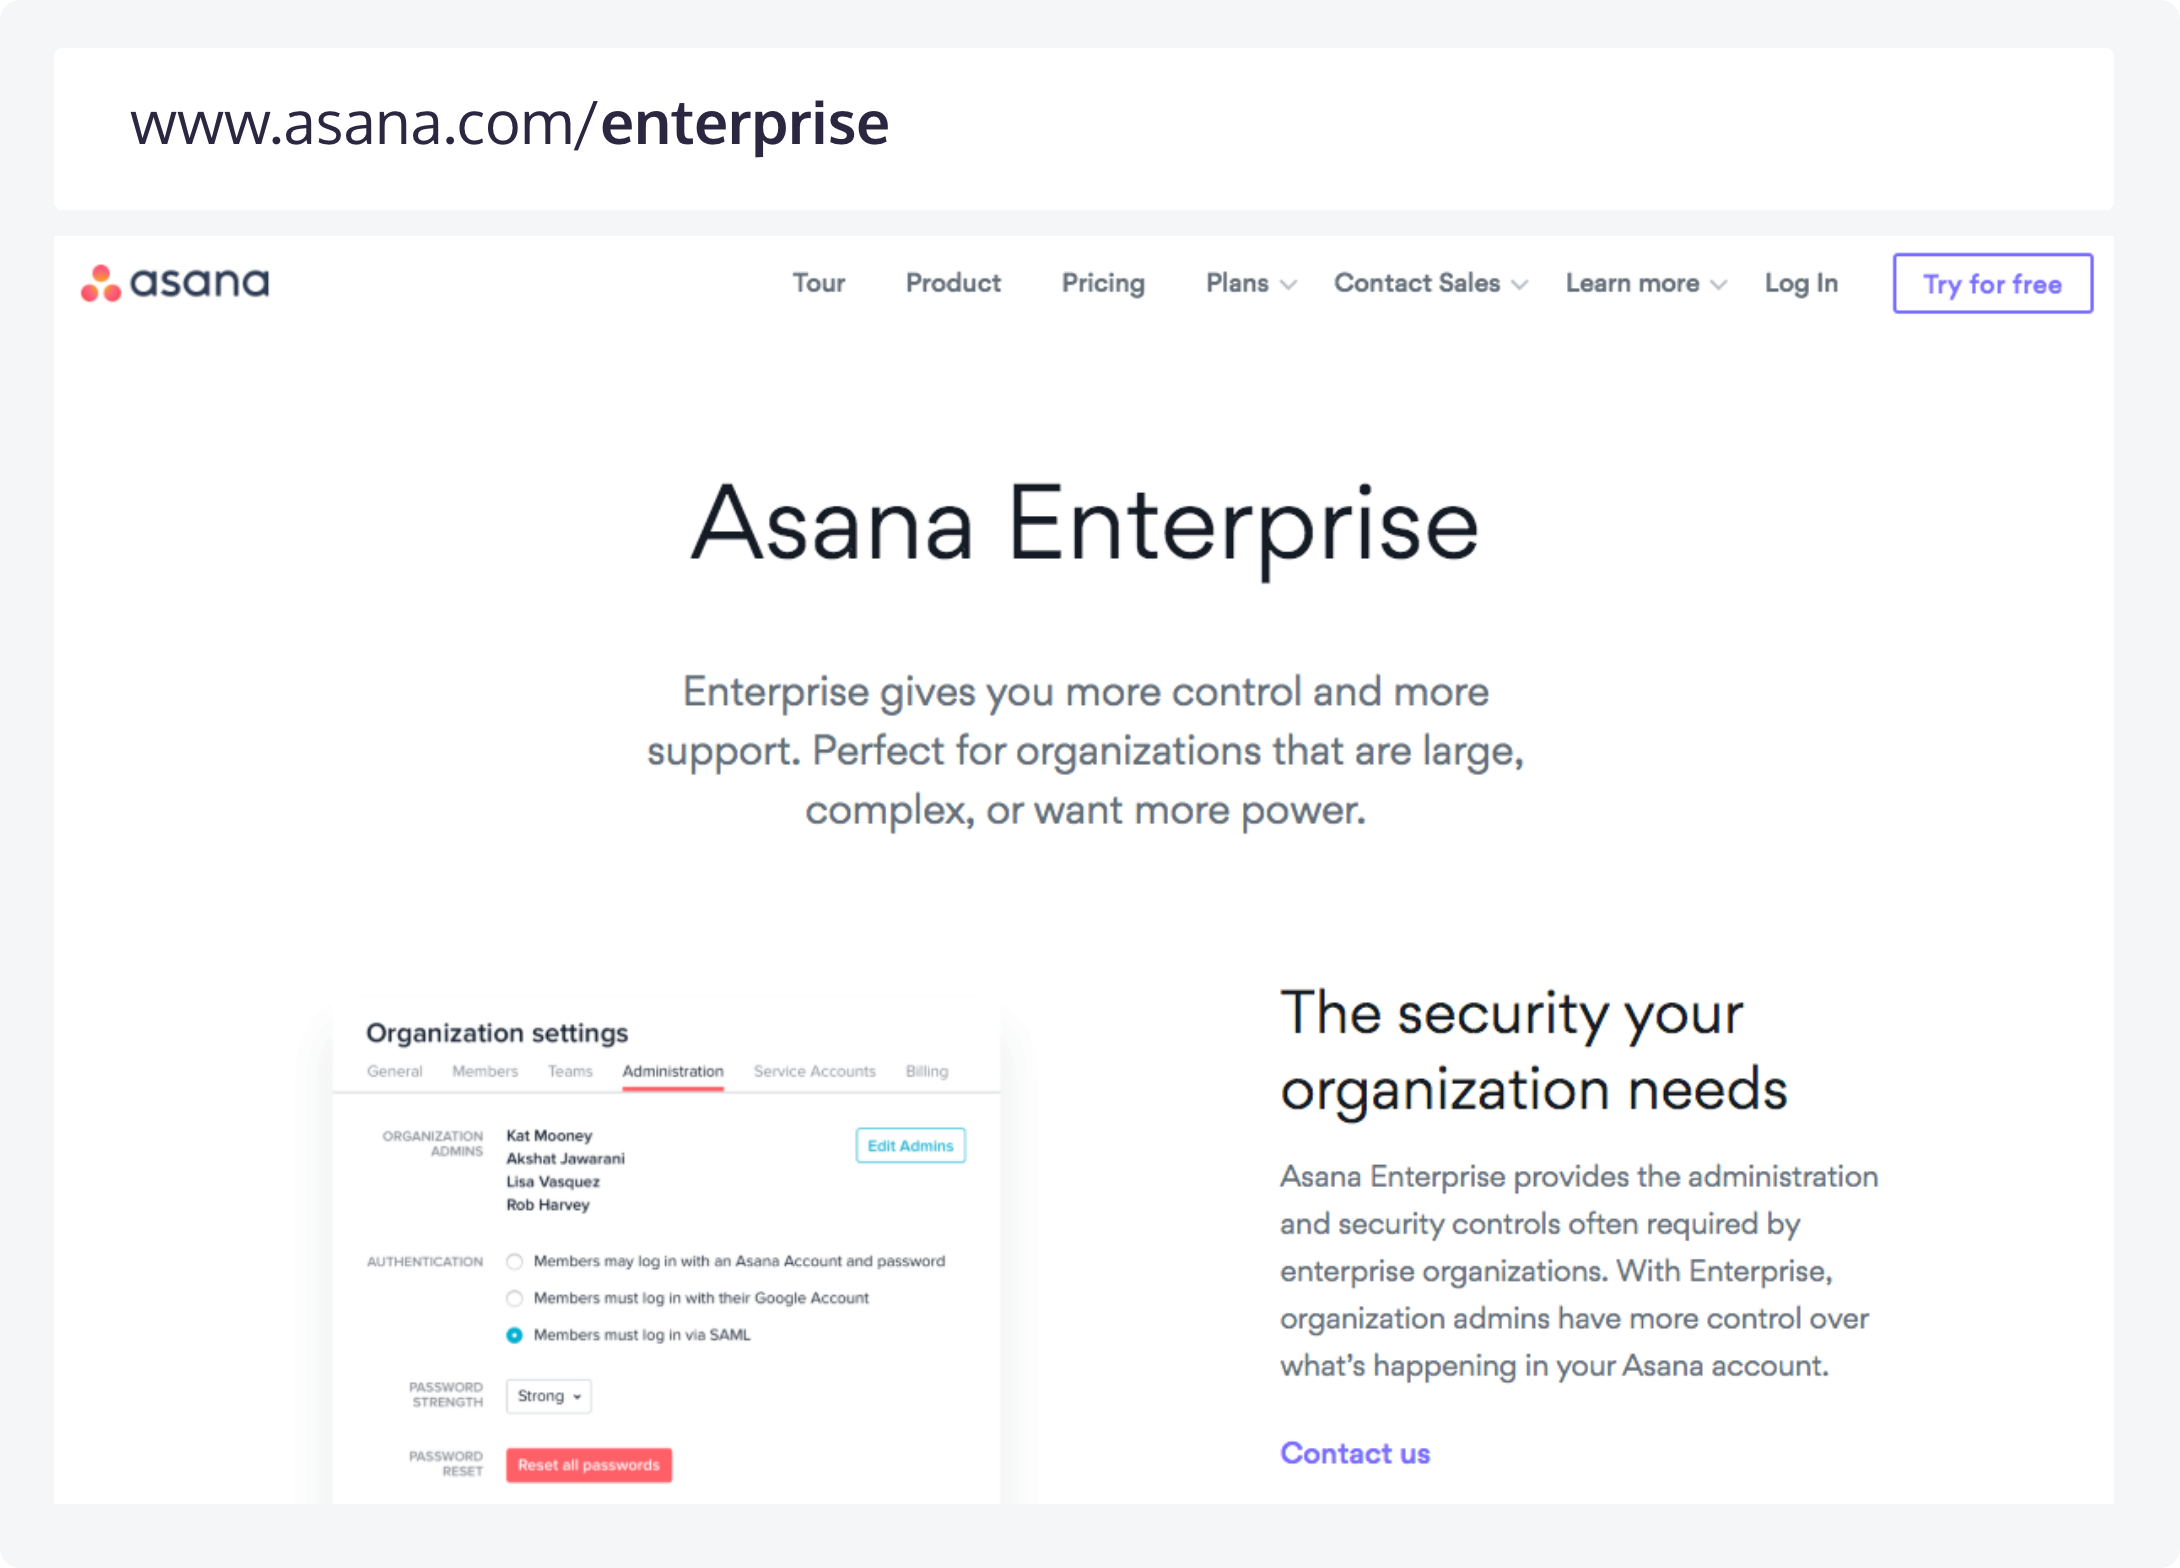 Asana's website page (and branch) for enterprise prospects and its corresponding URL